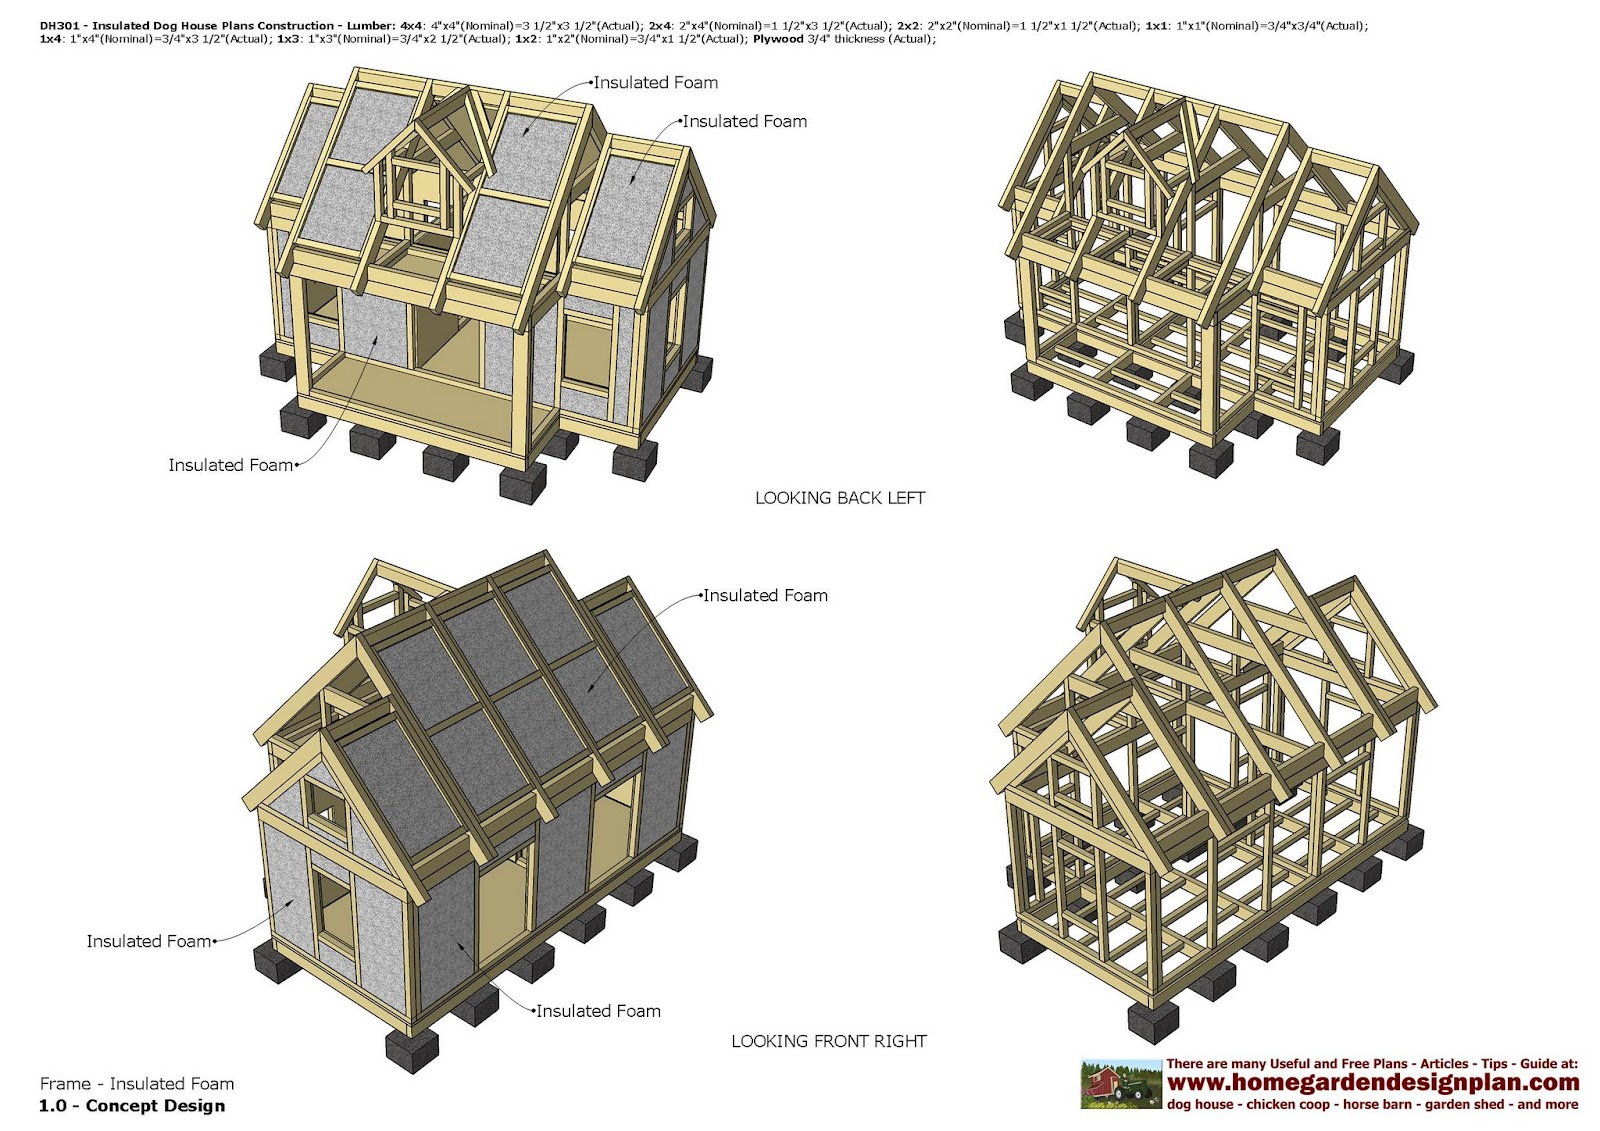 home garden plans DH301 Insulated Dog House Plans Dog House